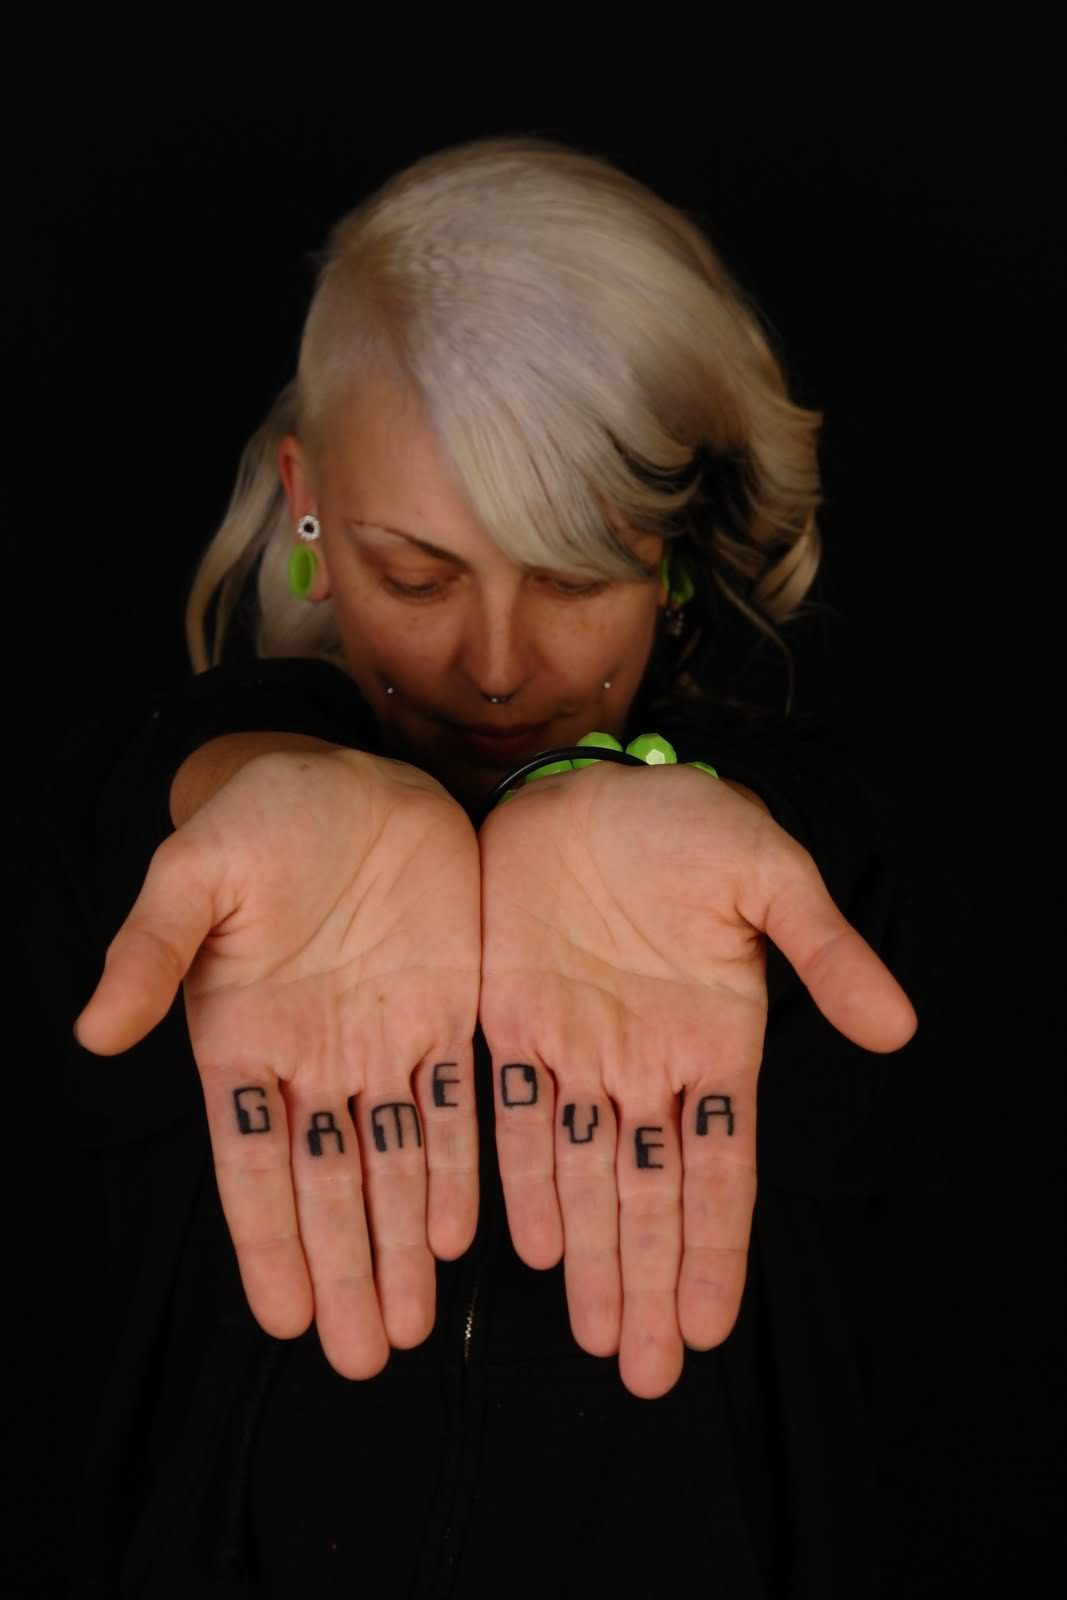 Game Over Tattoo On Fingers